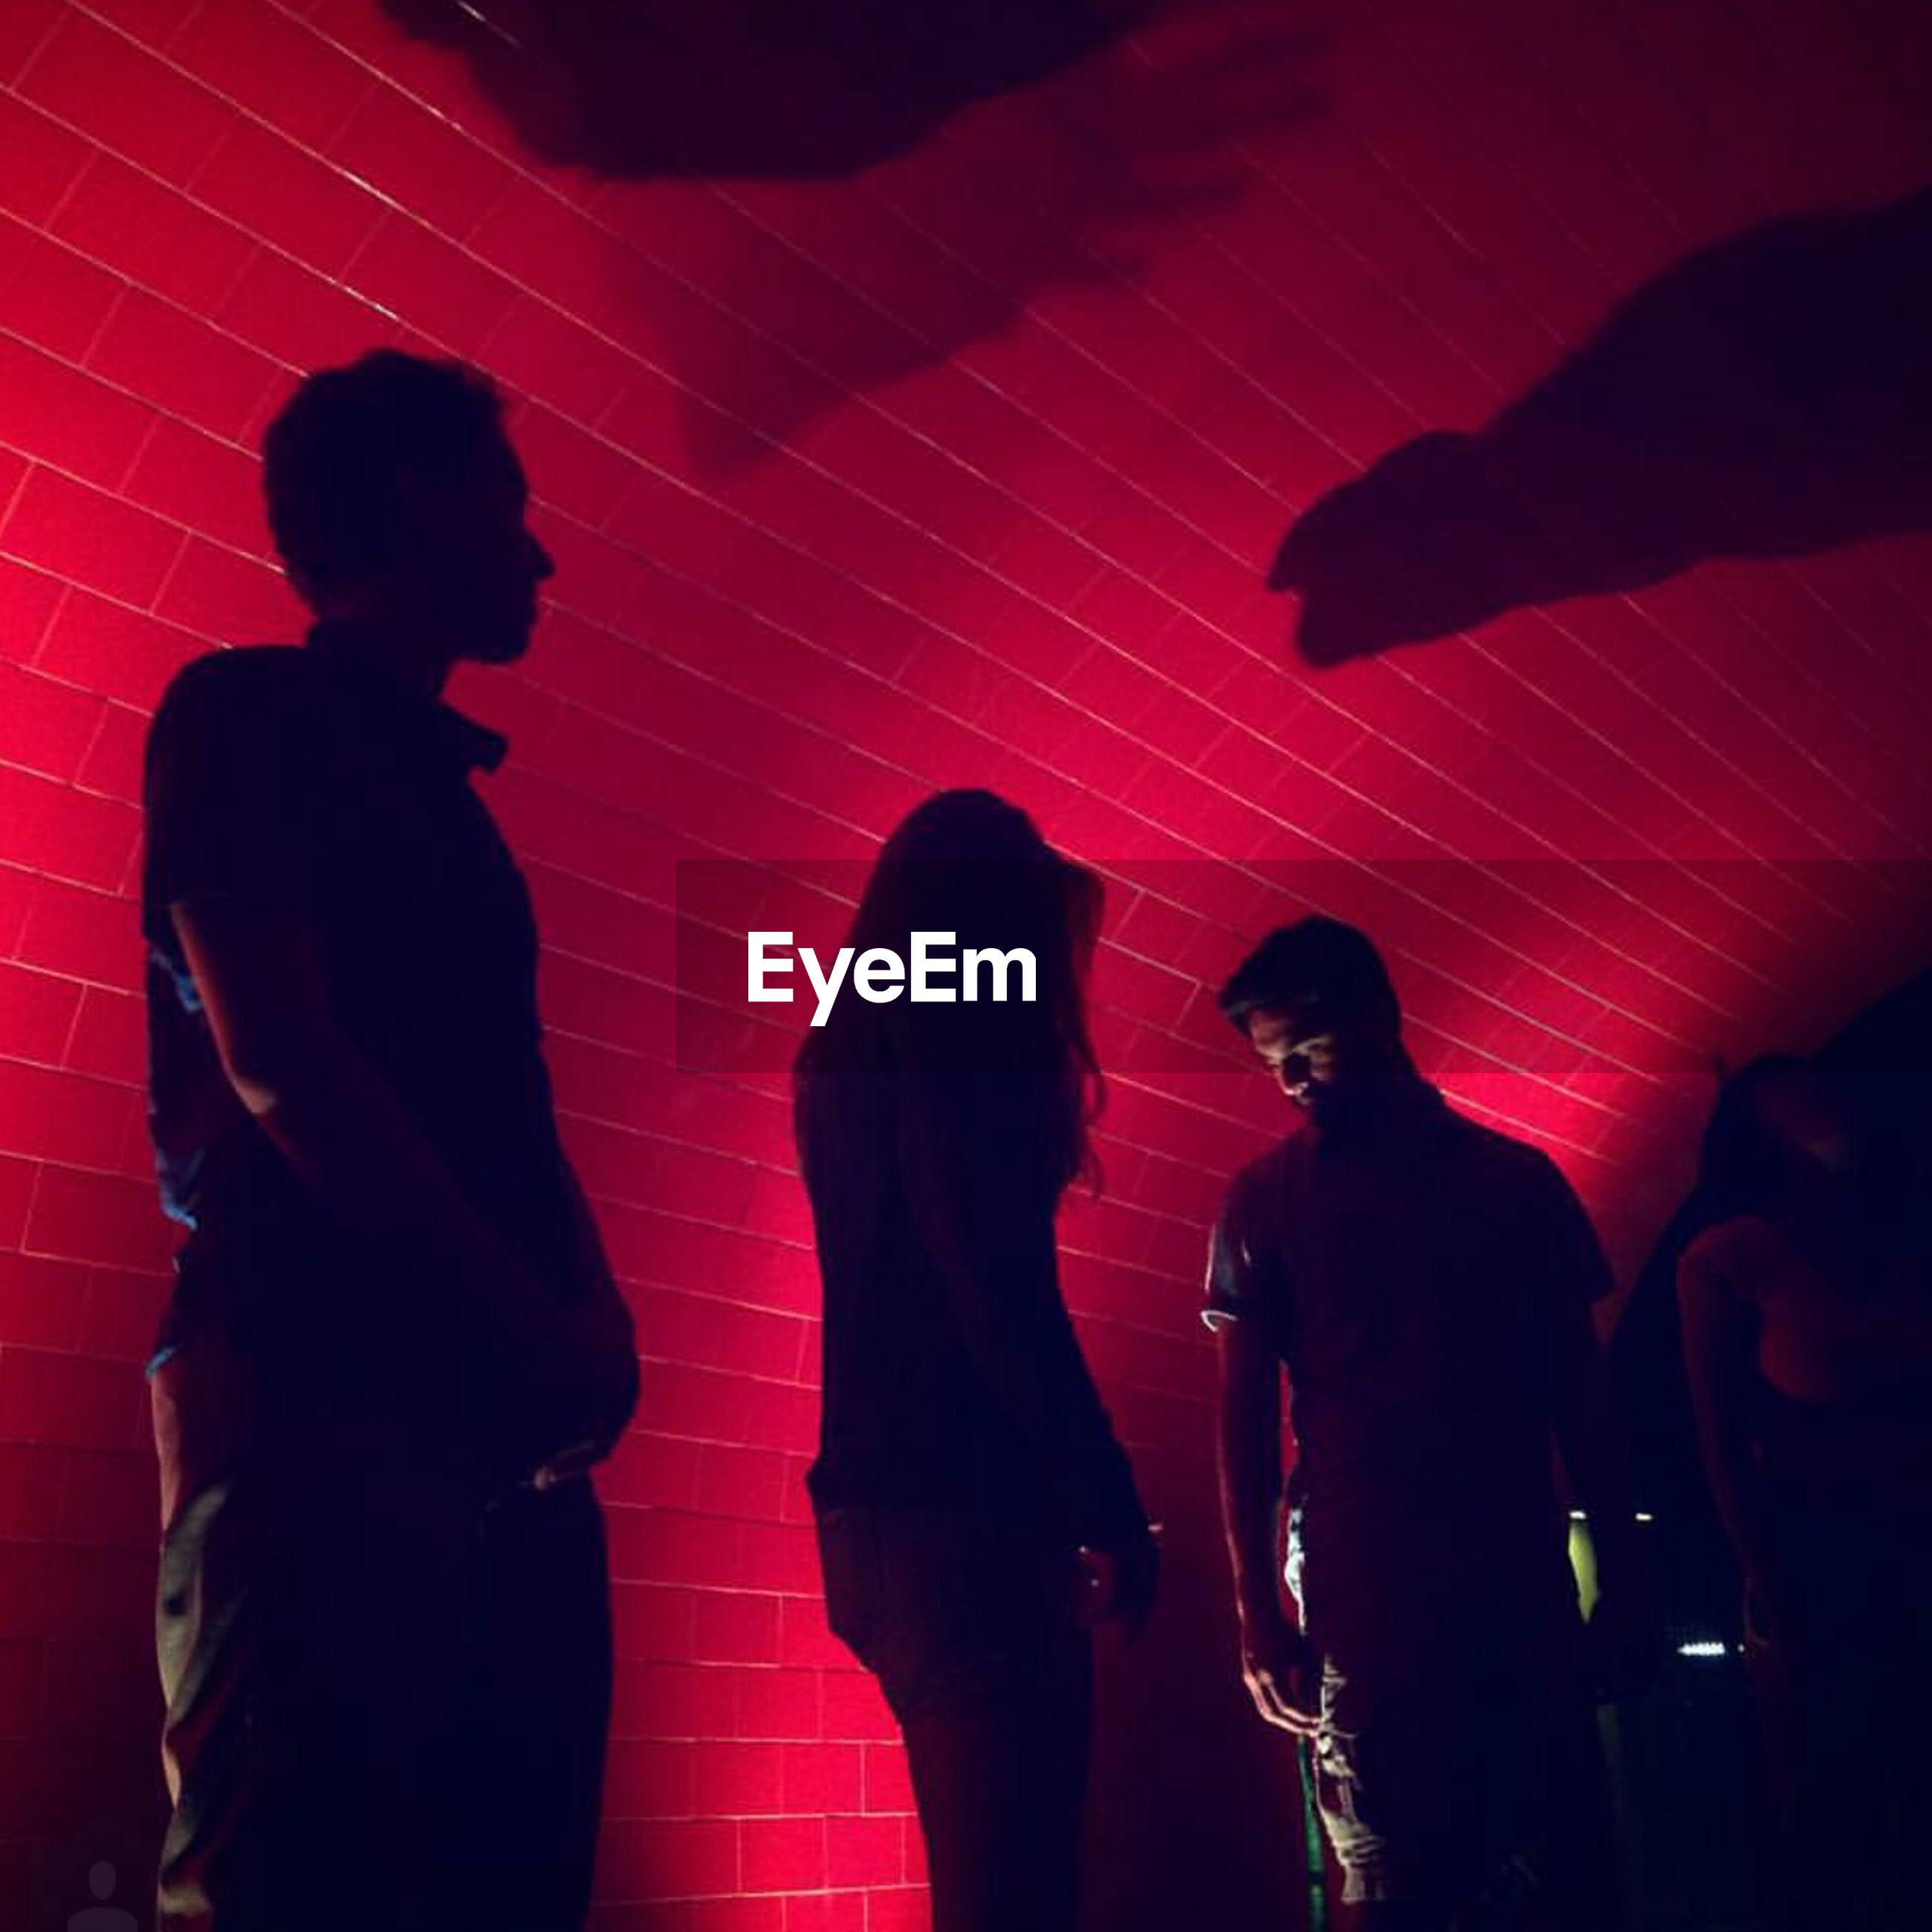 men, indoors, lifestyles, togetherness, night, person, illuminated, leisure activity, standing, large group of people, silhouette, arts culture and entertainment, rear view, performance, red, nightlife, music